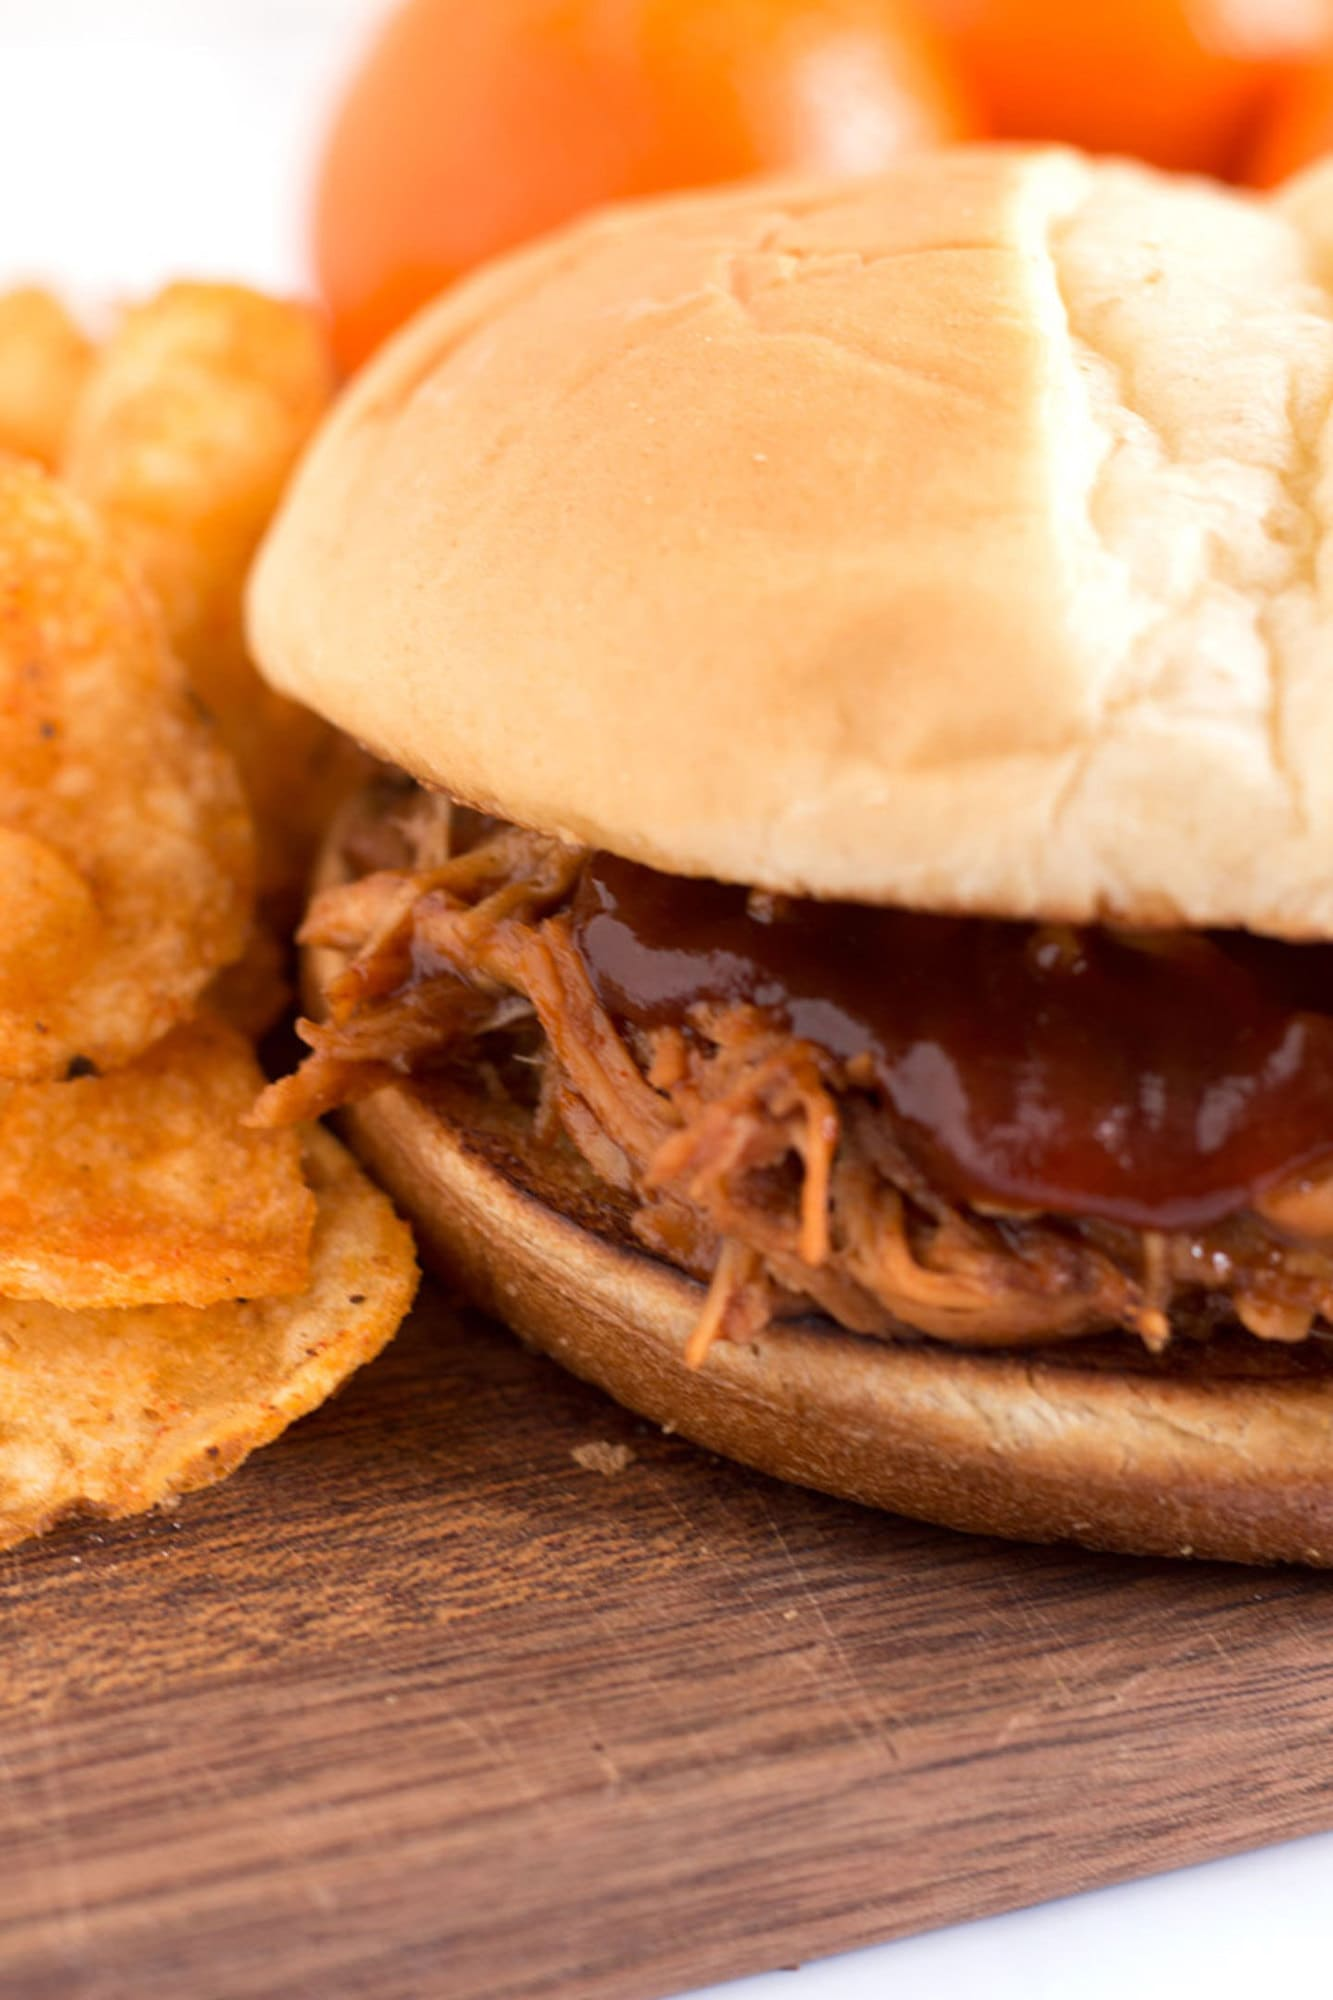 Shredded BBQ chicken on a bun with chips and tangerines.